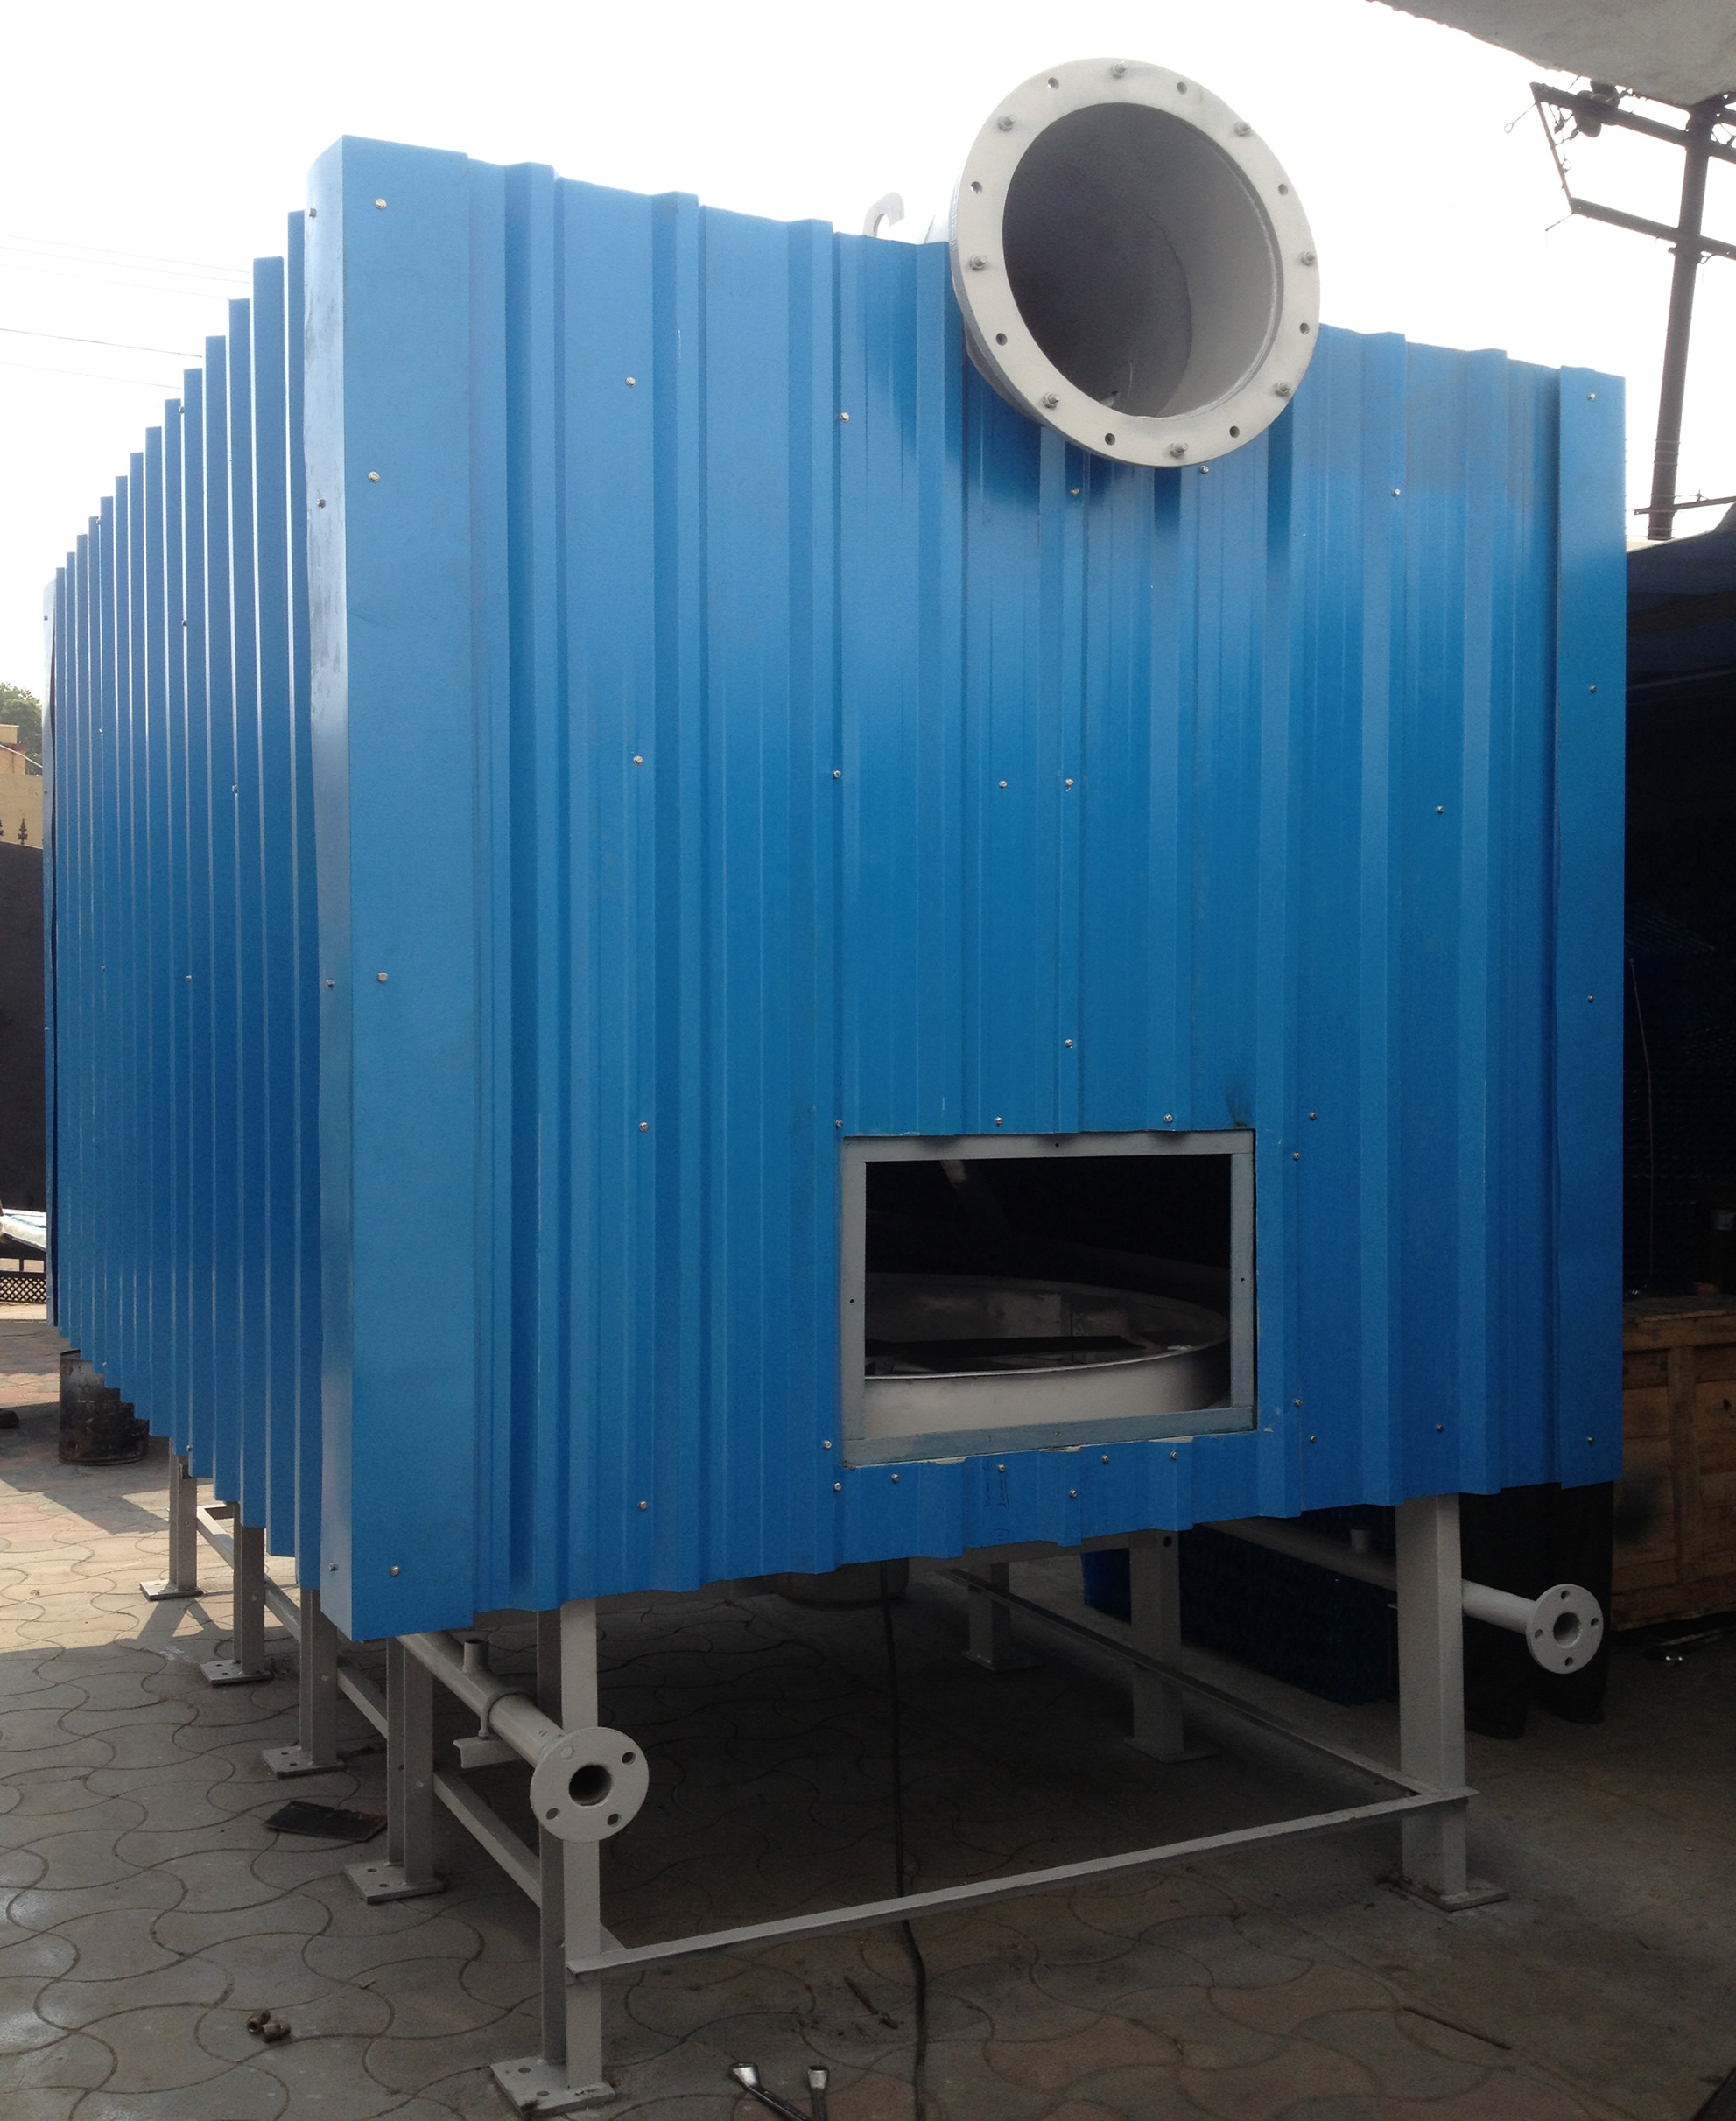 Adiabatic air cooled heat exchangers